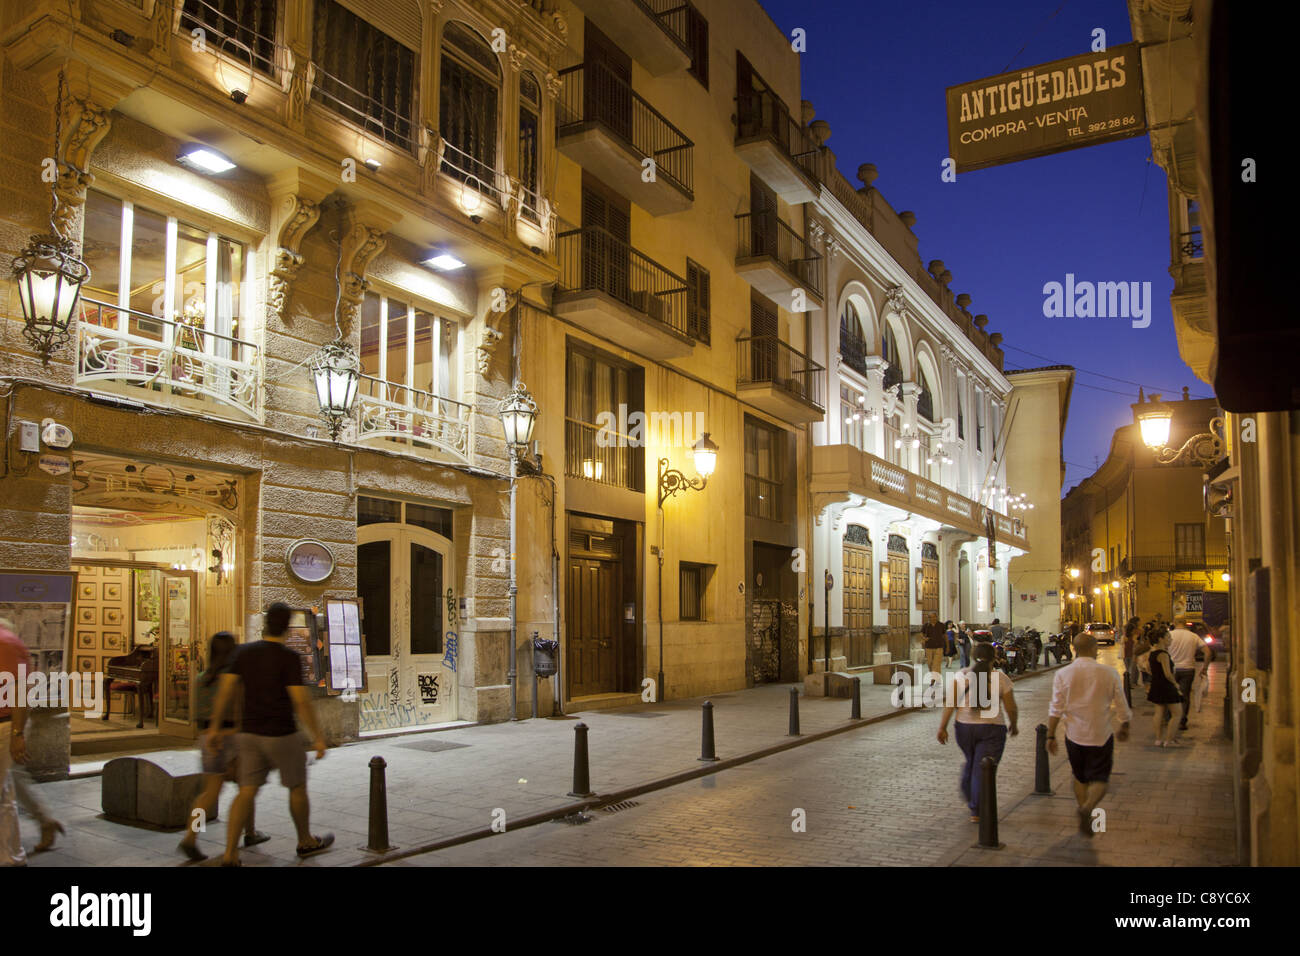 Restaurants and Theater in Calle Cavallers in El Carmen at night Valencia, Spain - Stock Image